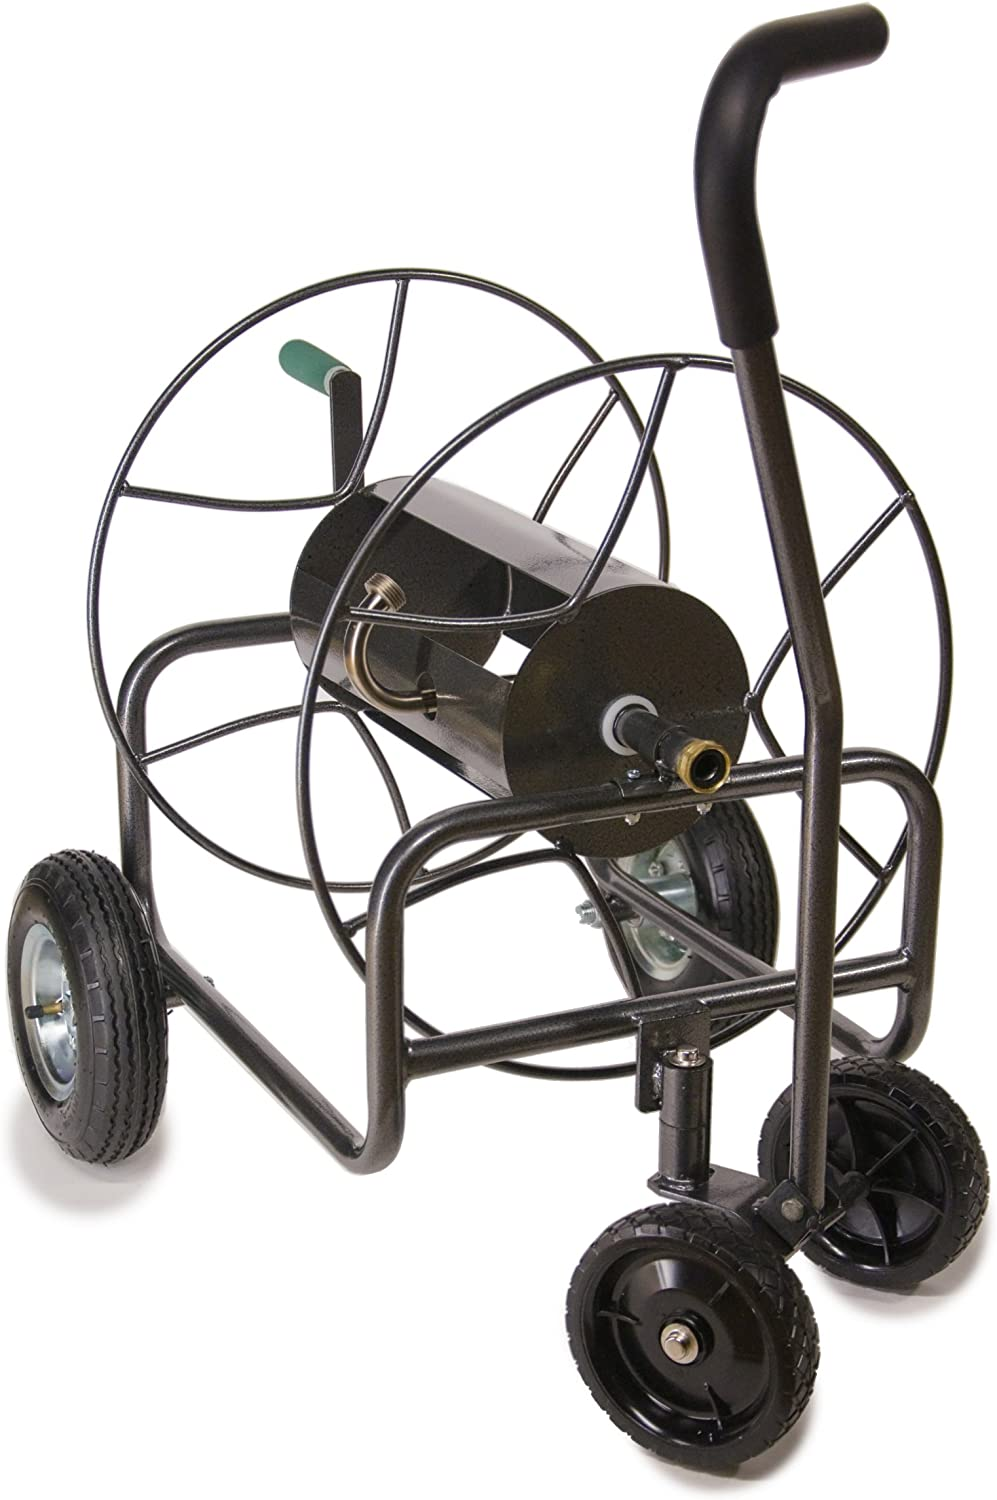 Yard Butler HT-4EZTURN Four-Wheeled Hose Reel Cart with Easy Turn Handle